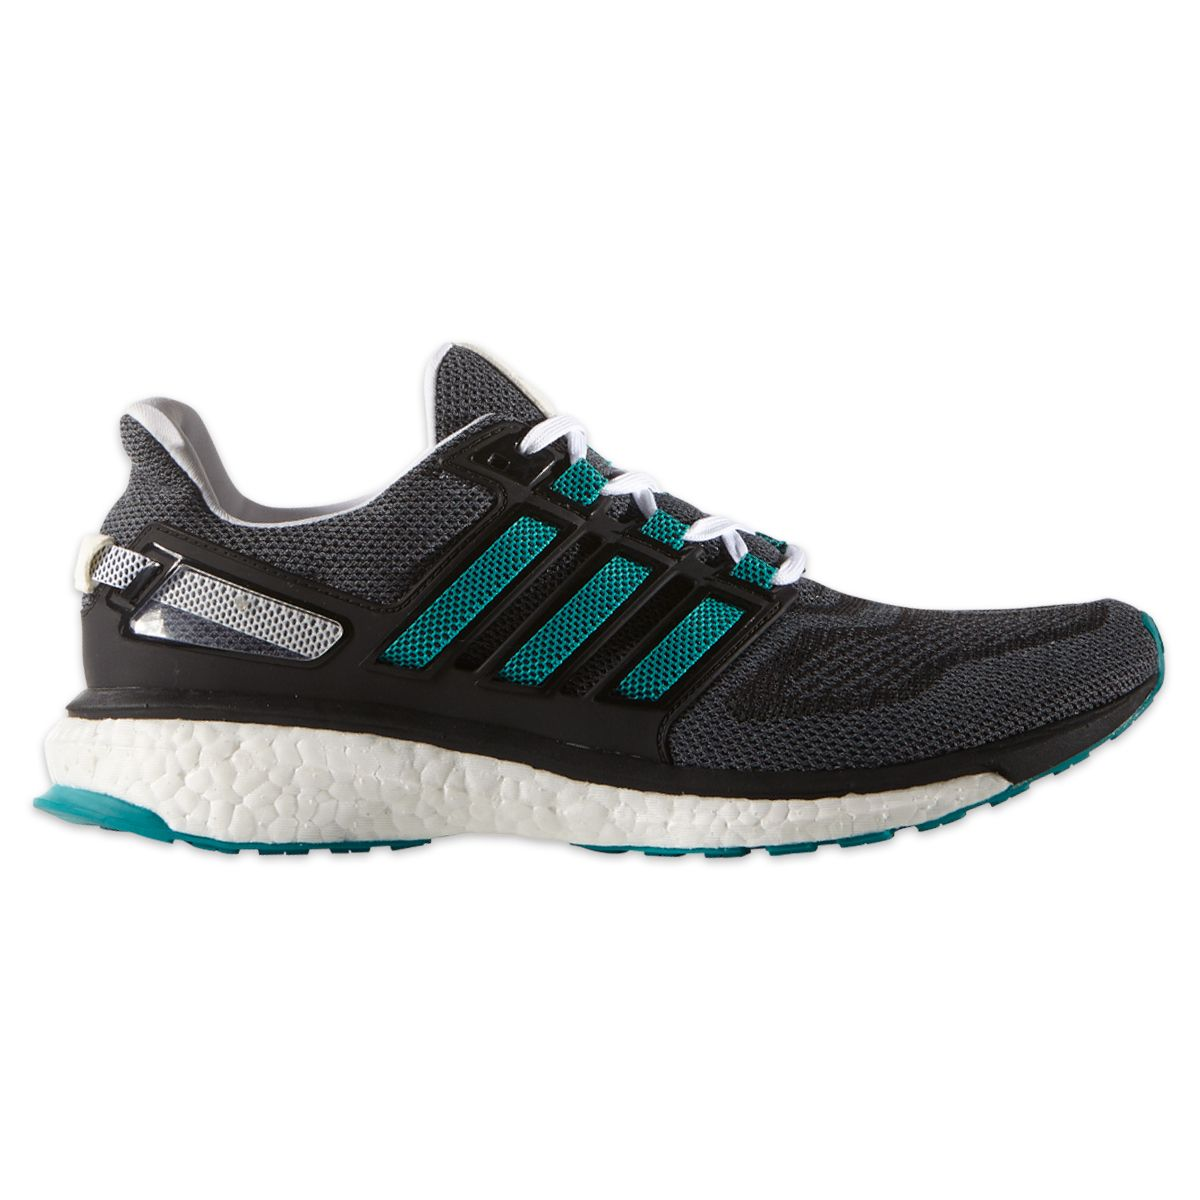 Adidas Energy Boost 3 Mens 169 99 Cdn Responsive Stability Is Taken To A New Leve Running Shoes For Men Adidas Running Shoes Neutral Running Shoes